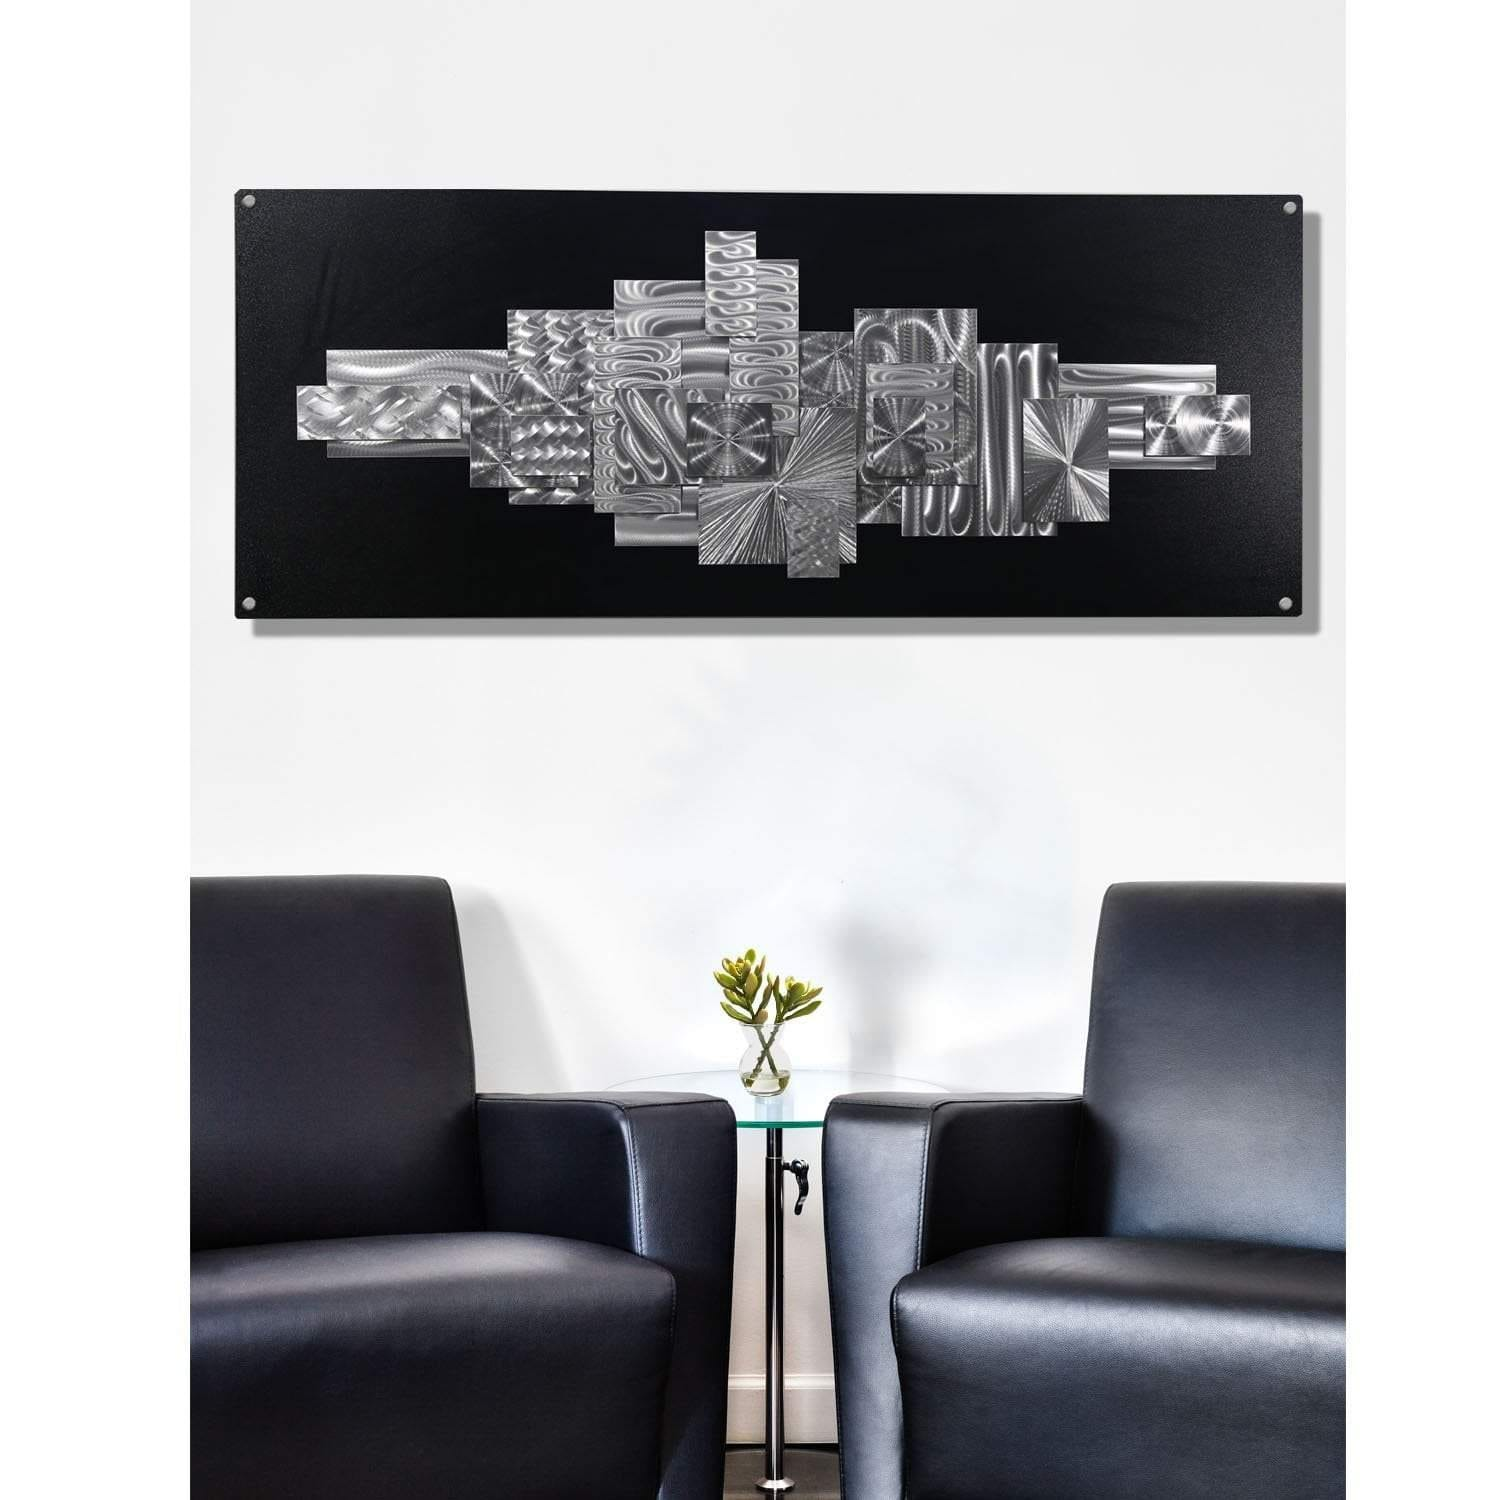 Statements2000 Black Silver Large Abstract Metal Wall Art Sculpture By Jon Allen Time Suspended 2 On Free Shipping Today